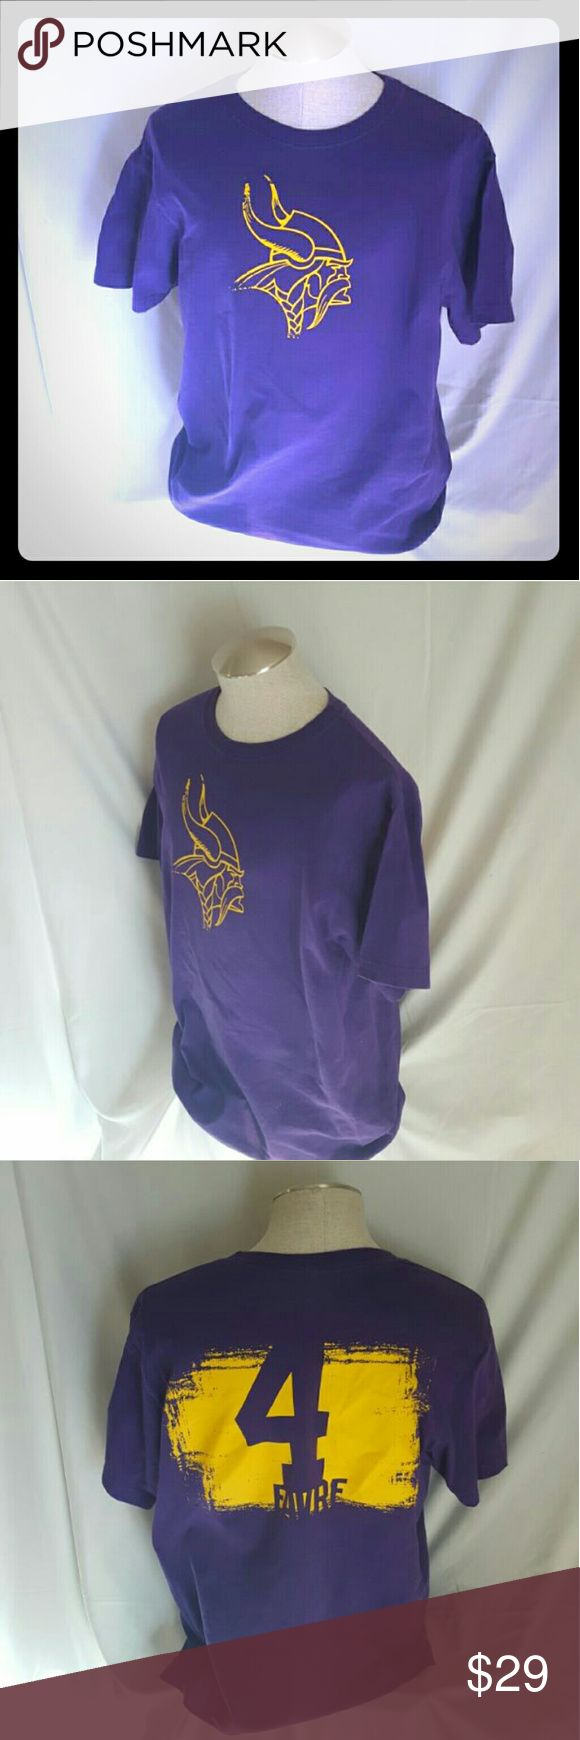 Minnesota Vikings Brett Favre Jersey T Shirt Machine washable 100% cotton   Pit to pit 22 Top collar to hem 28  Normal wear Gently used Size may vary   Great piece for any collector or fan   Shipped with care Buy with confidence  Best offer   Please review all pictures and descriptions to verify what you are buying  Thank you for checking out my listings today NFL Team Apperal Shirts Tees - Short Sleeve